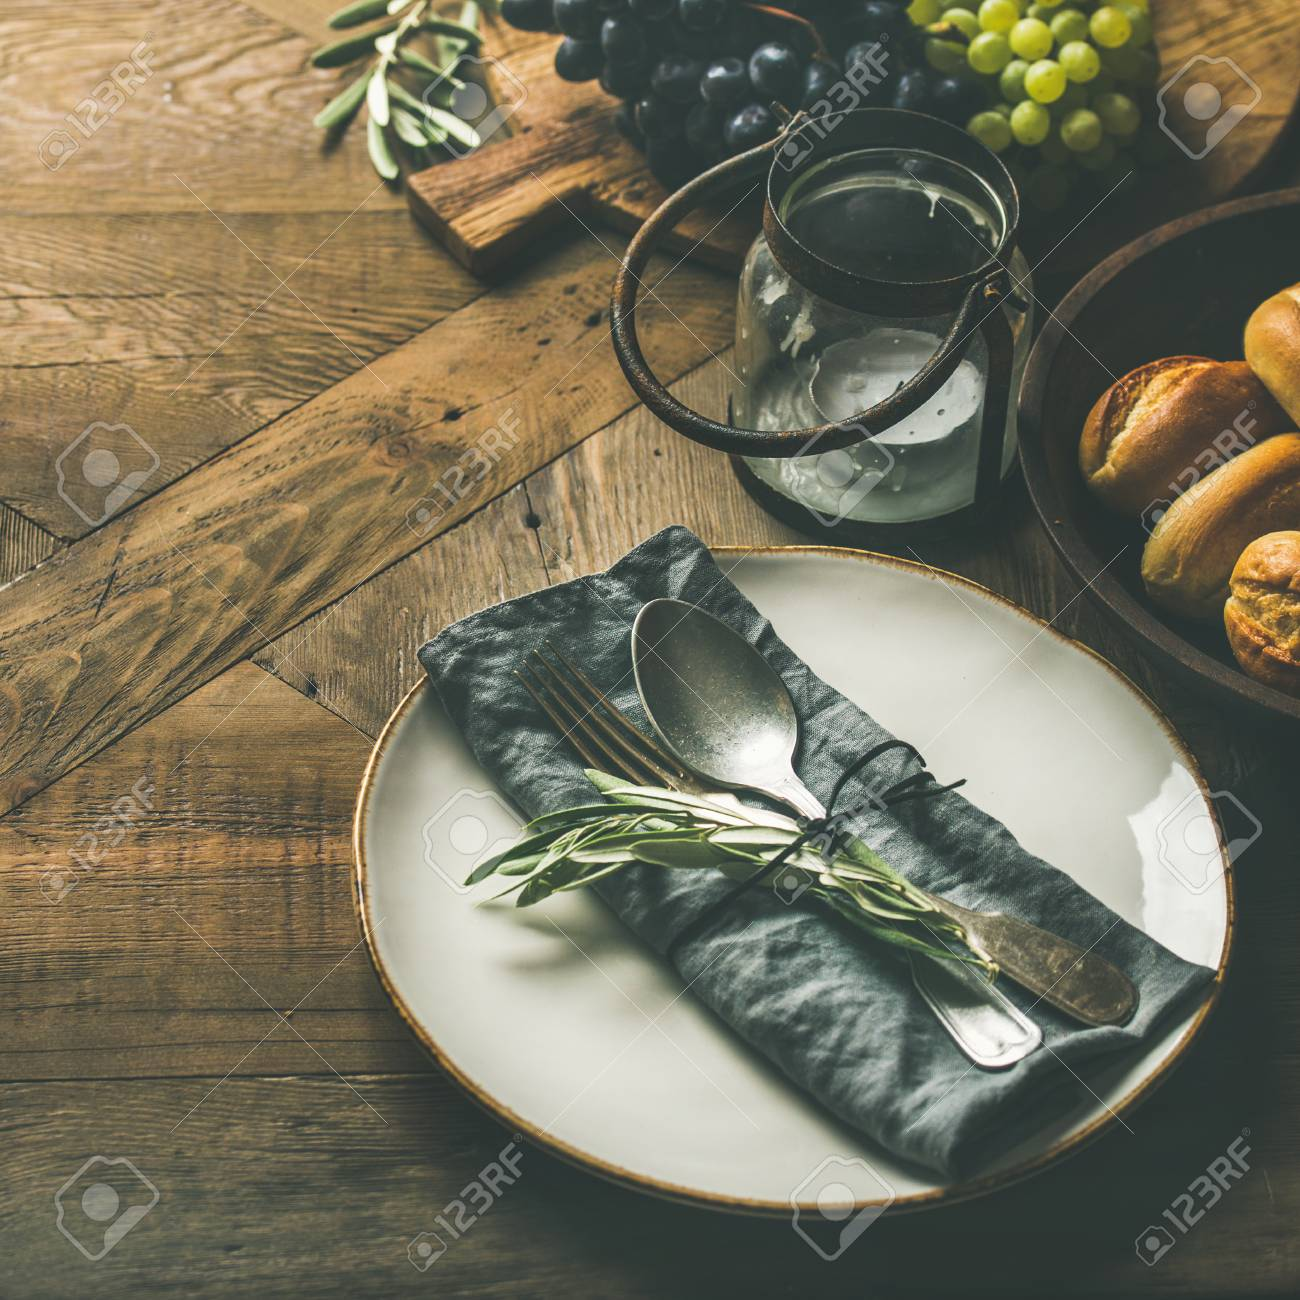 Fall Holiday Table Decoration Setting Plate With Linen Napkin Stock Photo Picture And Royalty Free Image Image 107245651